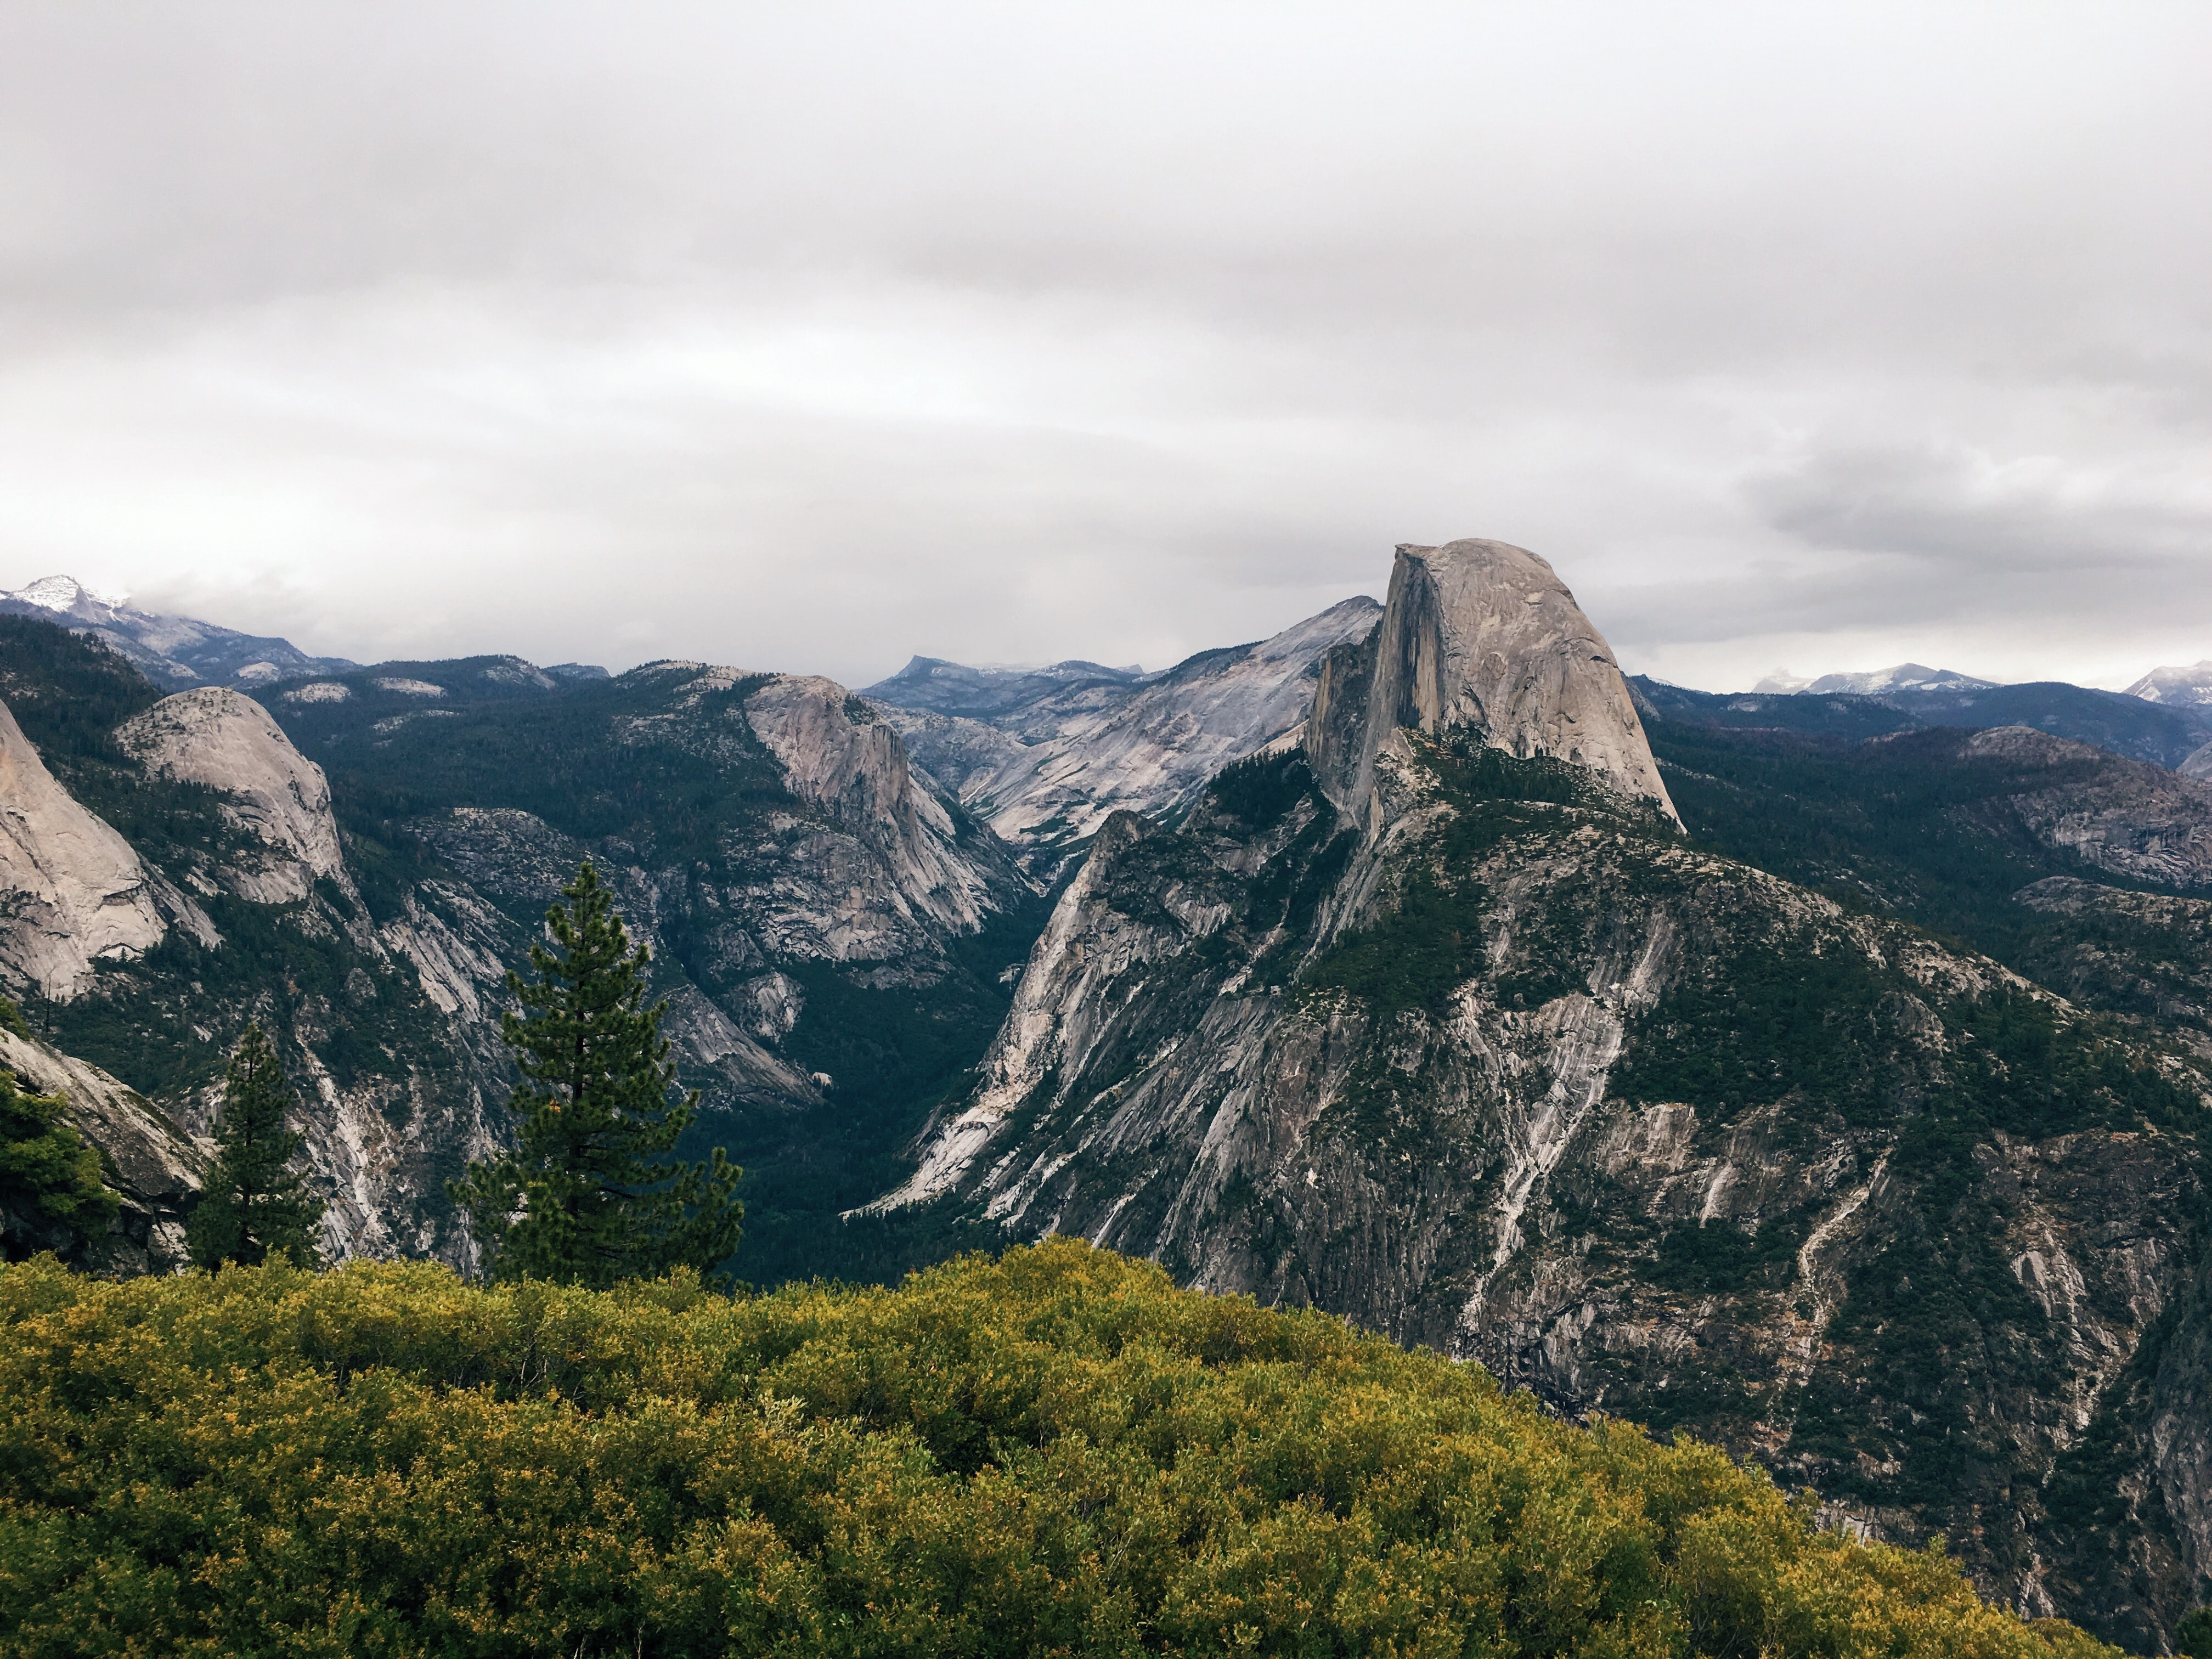 High view of the side of the Half Dome cliff in Yosemite